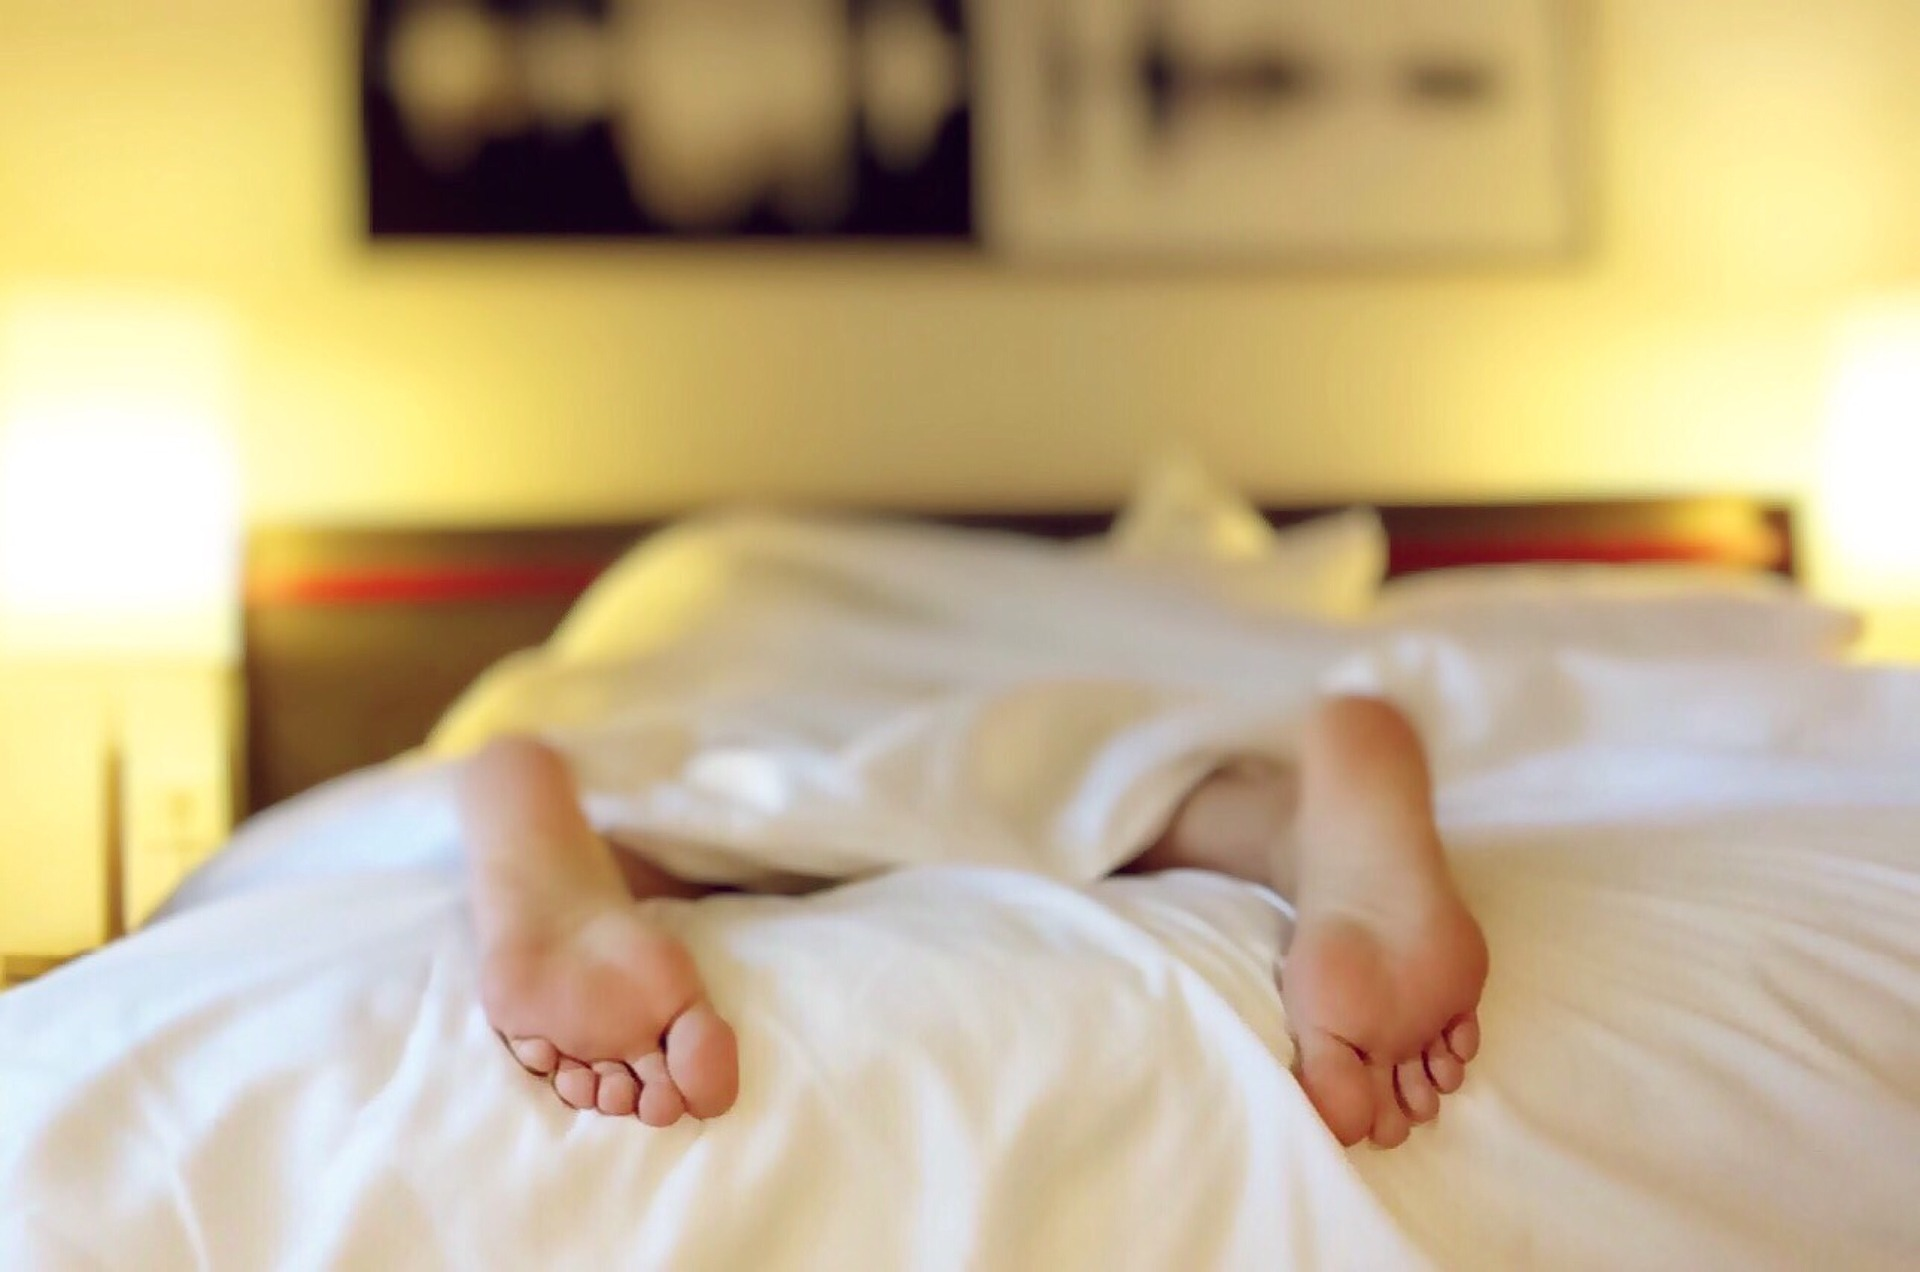 A photo of legs from a person sleeping